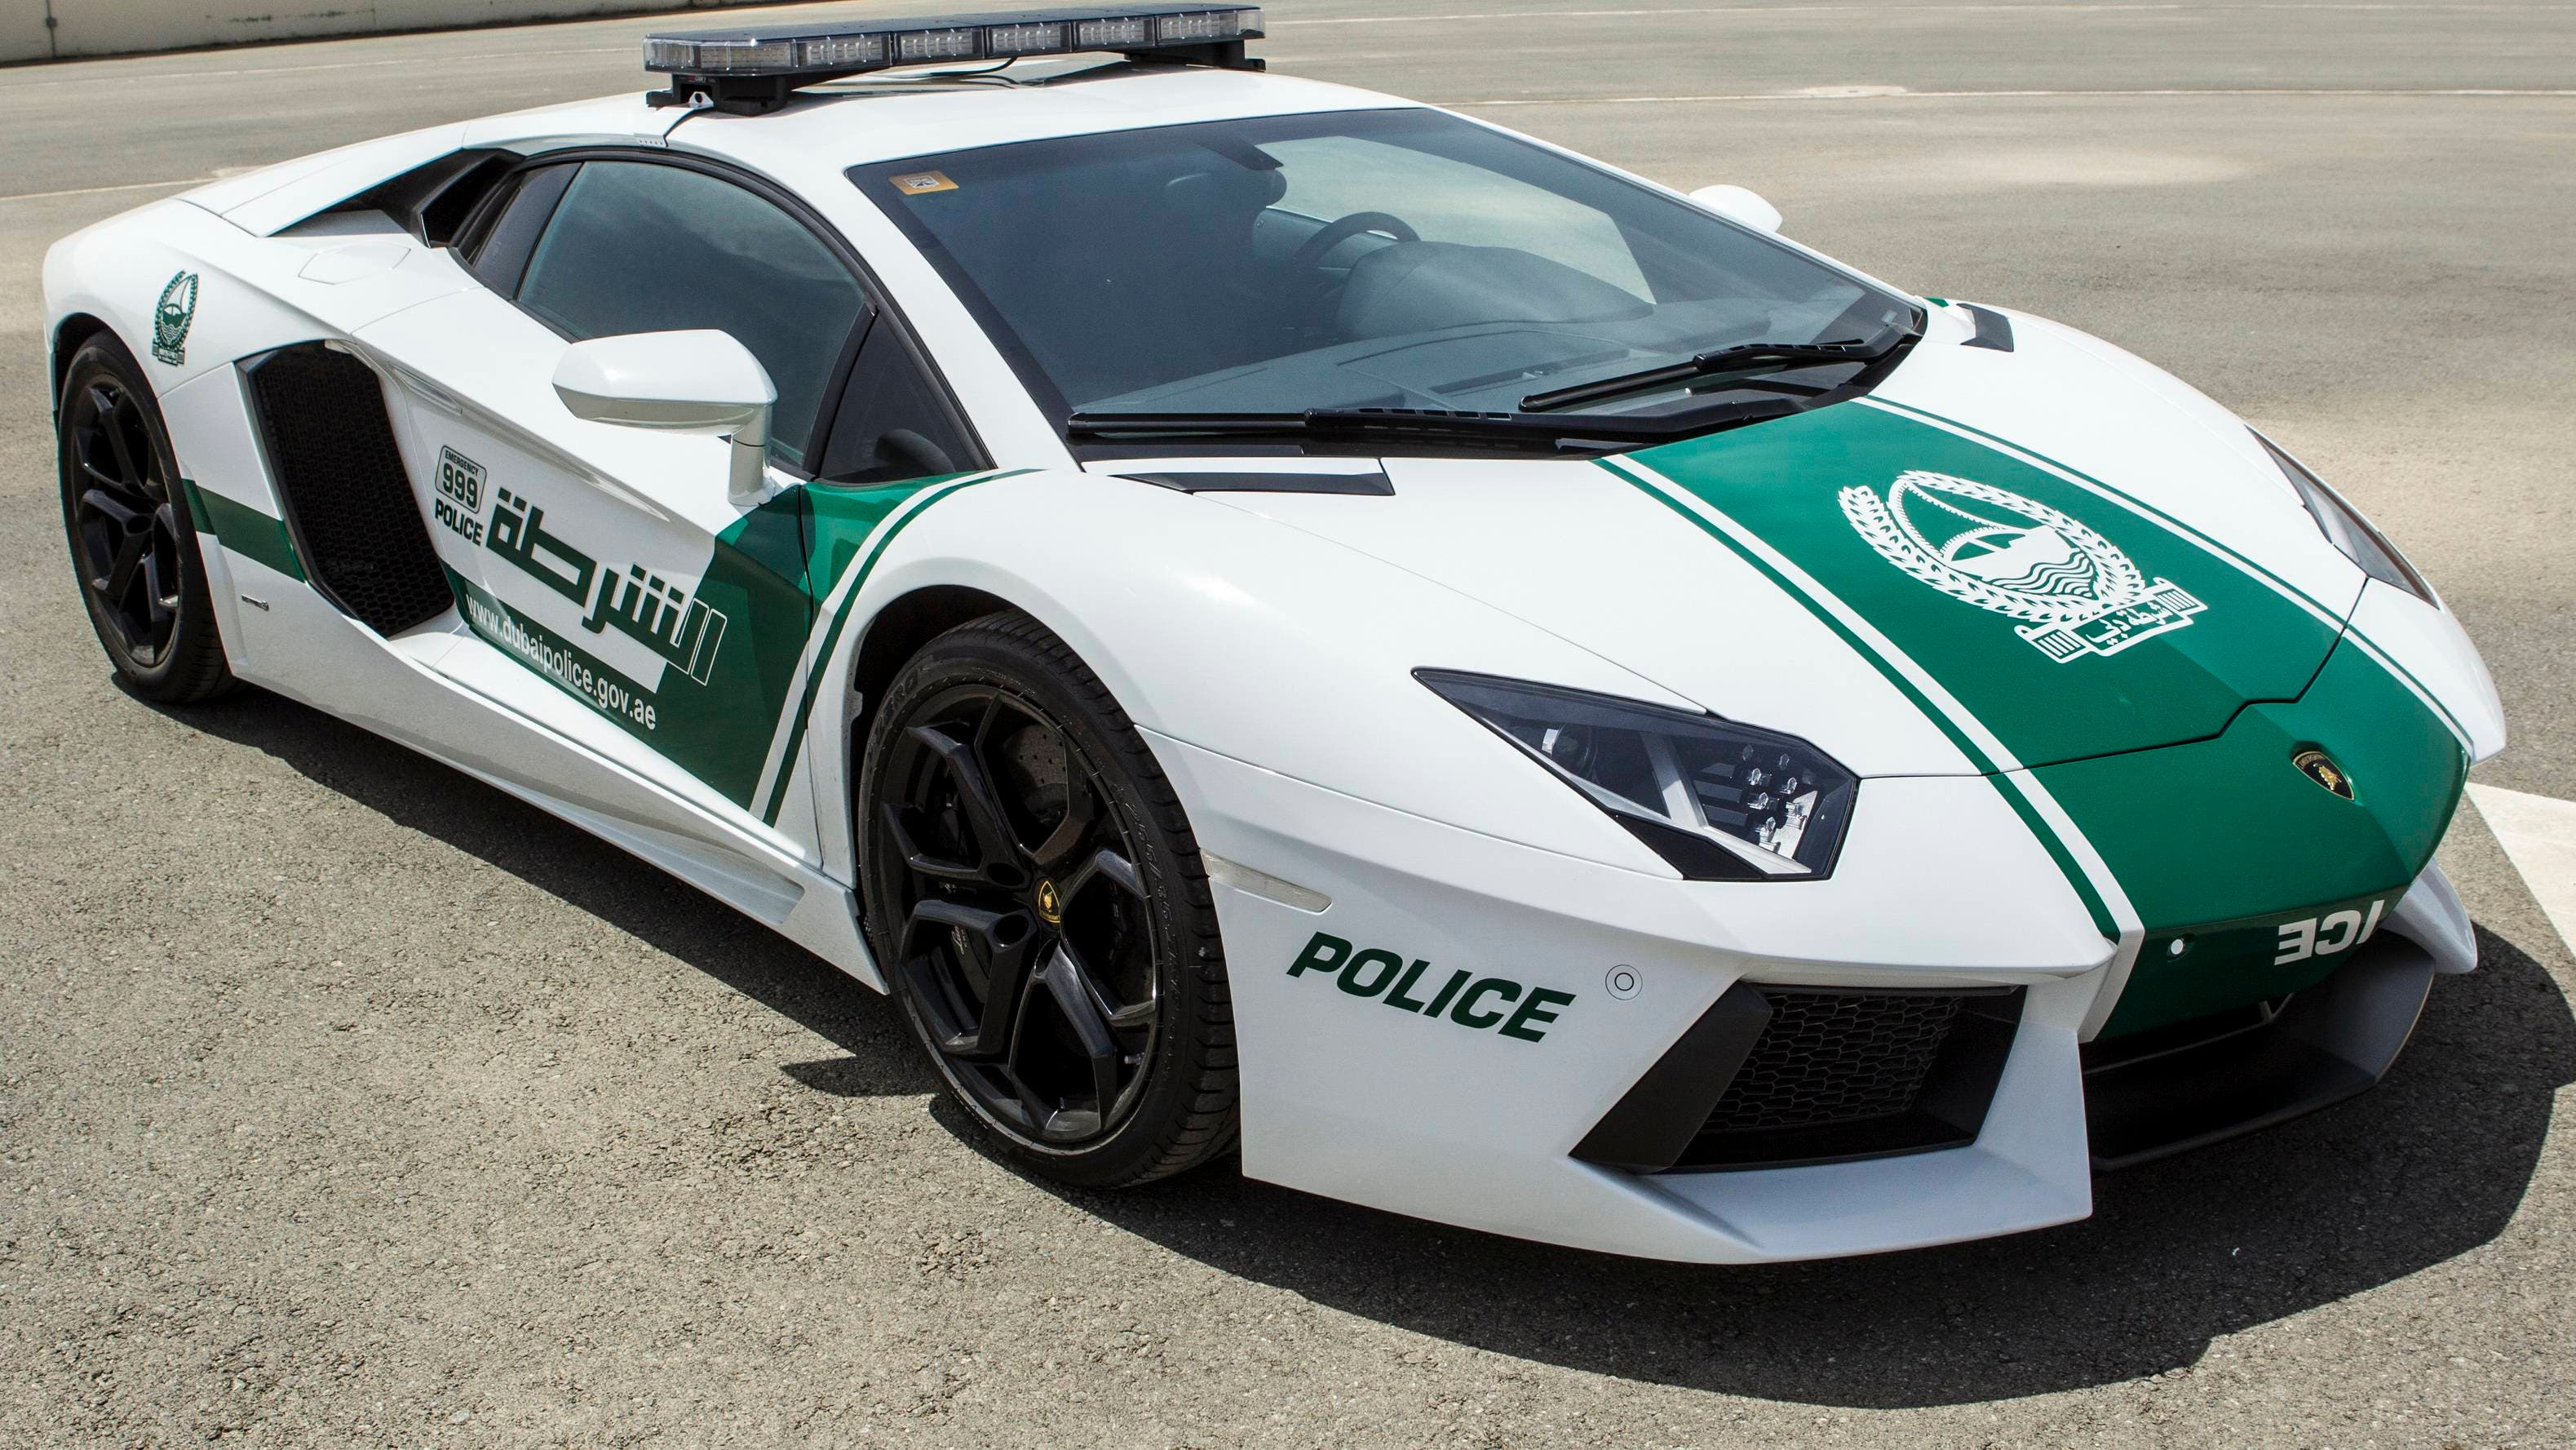 Dubai Police Add Superbike To Luxury Car Fleet Al Arabiya English